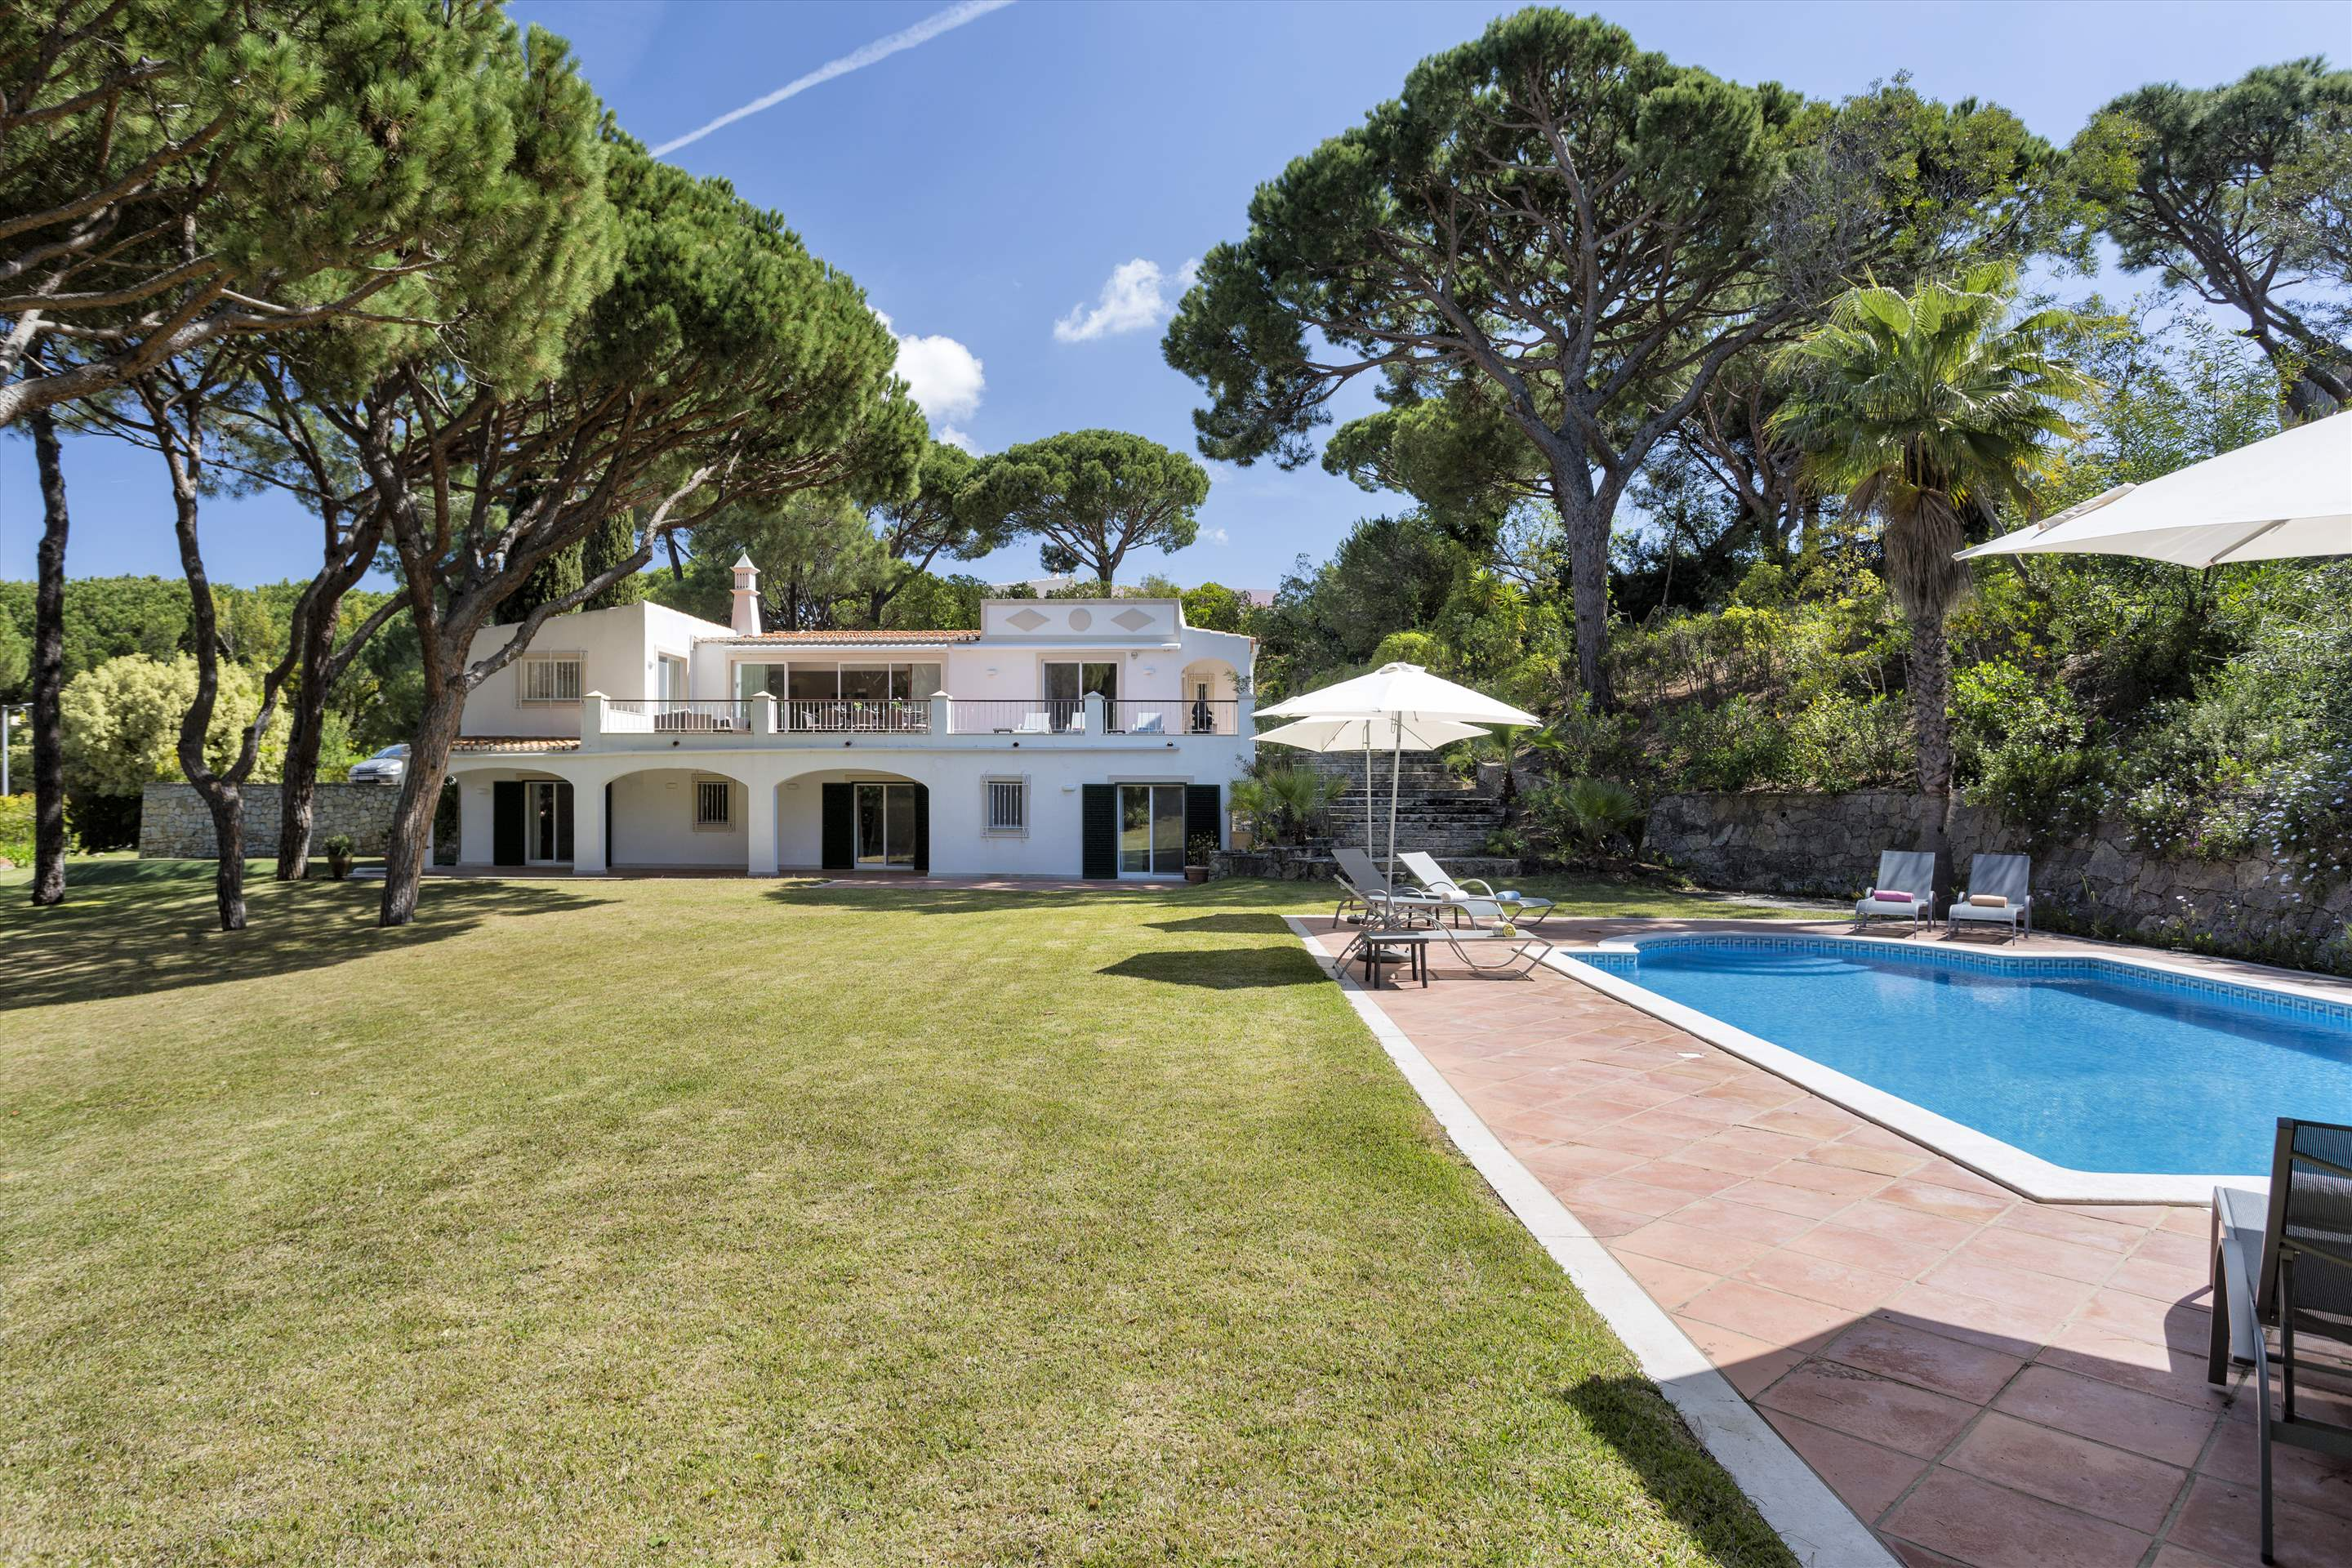 Villa Rosemaria, 5 Bedrooms, 5 bedroom villa in Vale do Lobo, Algarve Photo #19